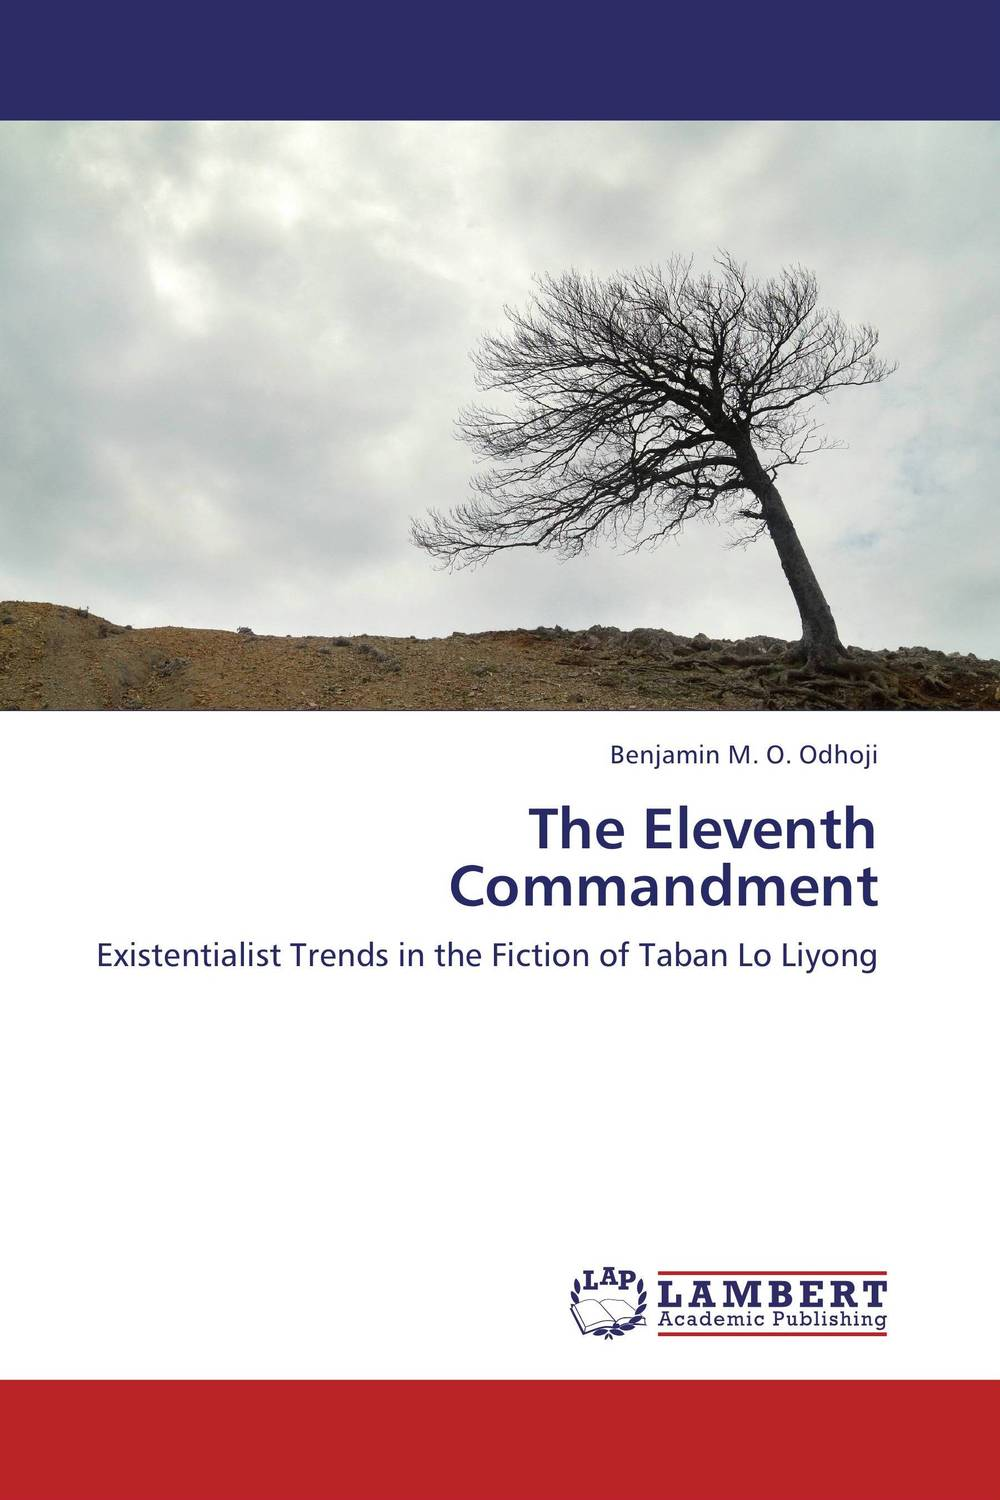 The Eleventh Commandment the role of evaluation as a mechanism for advancing principal practice